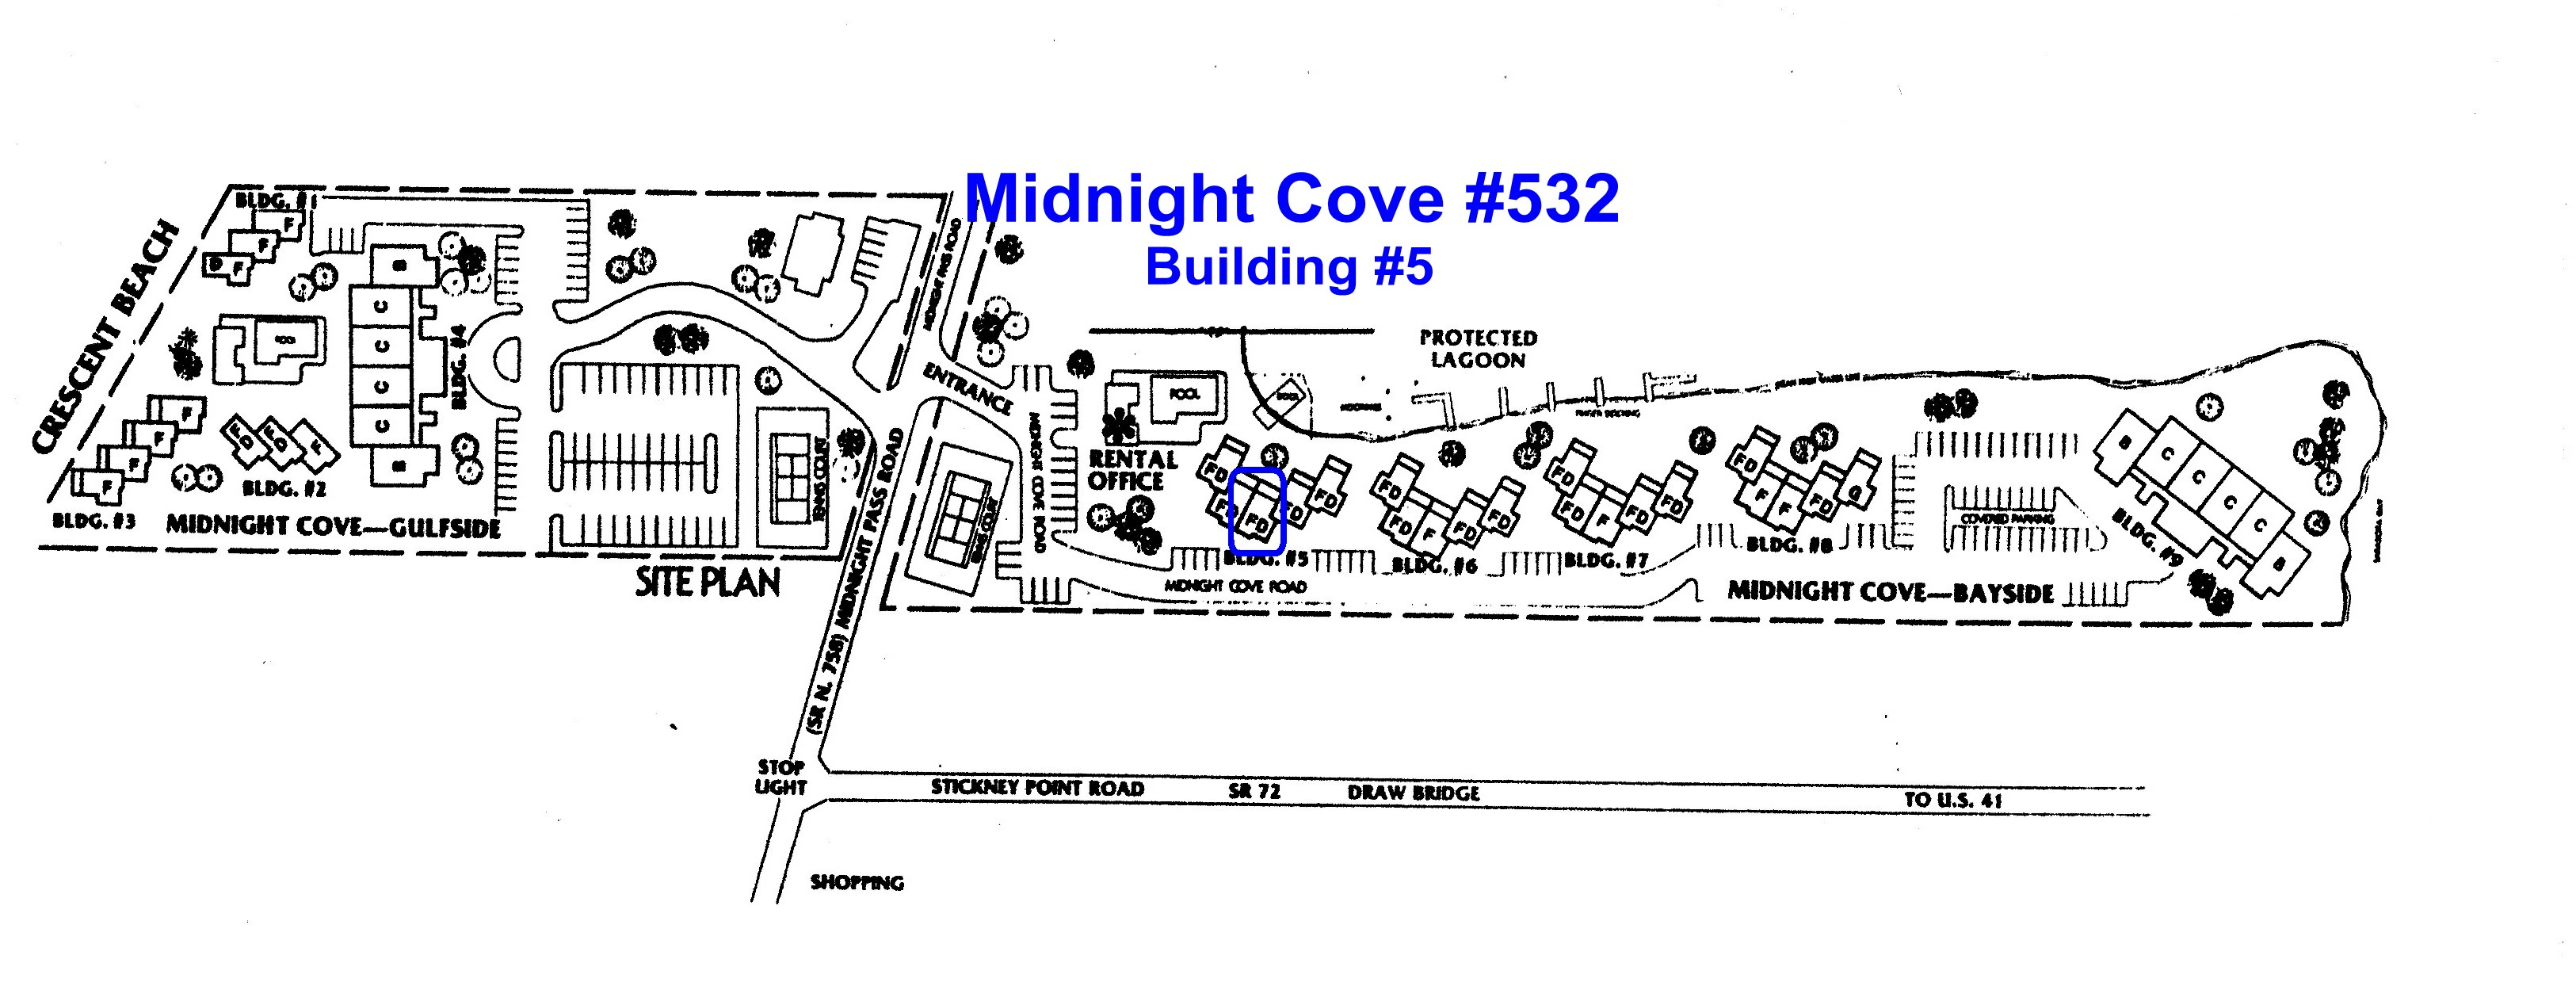 Midnight Cove #532 is in the 1st building on the Midnight Cove bayside property, building #5, 3rd stack from the left, on the 3rd floor.